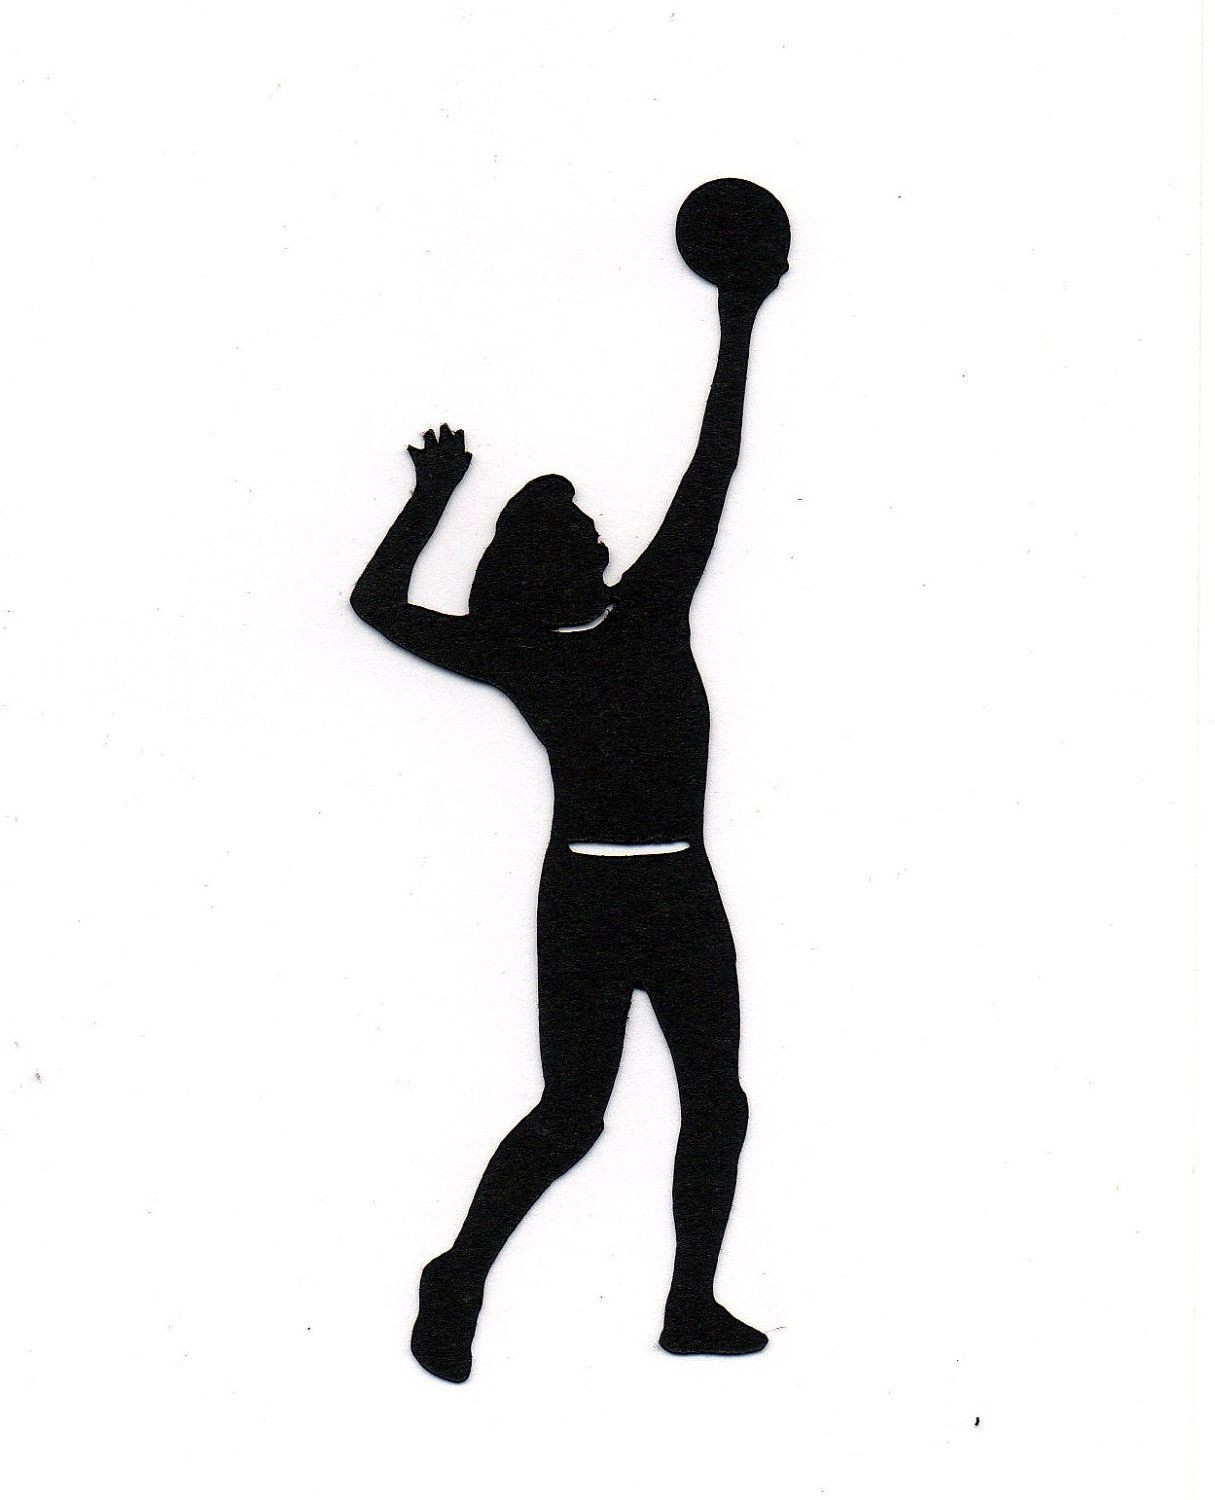 1215x1500 Female Volleyball Player Stylized Silhouette Vector Image